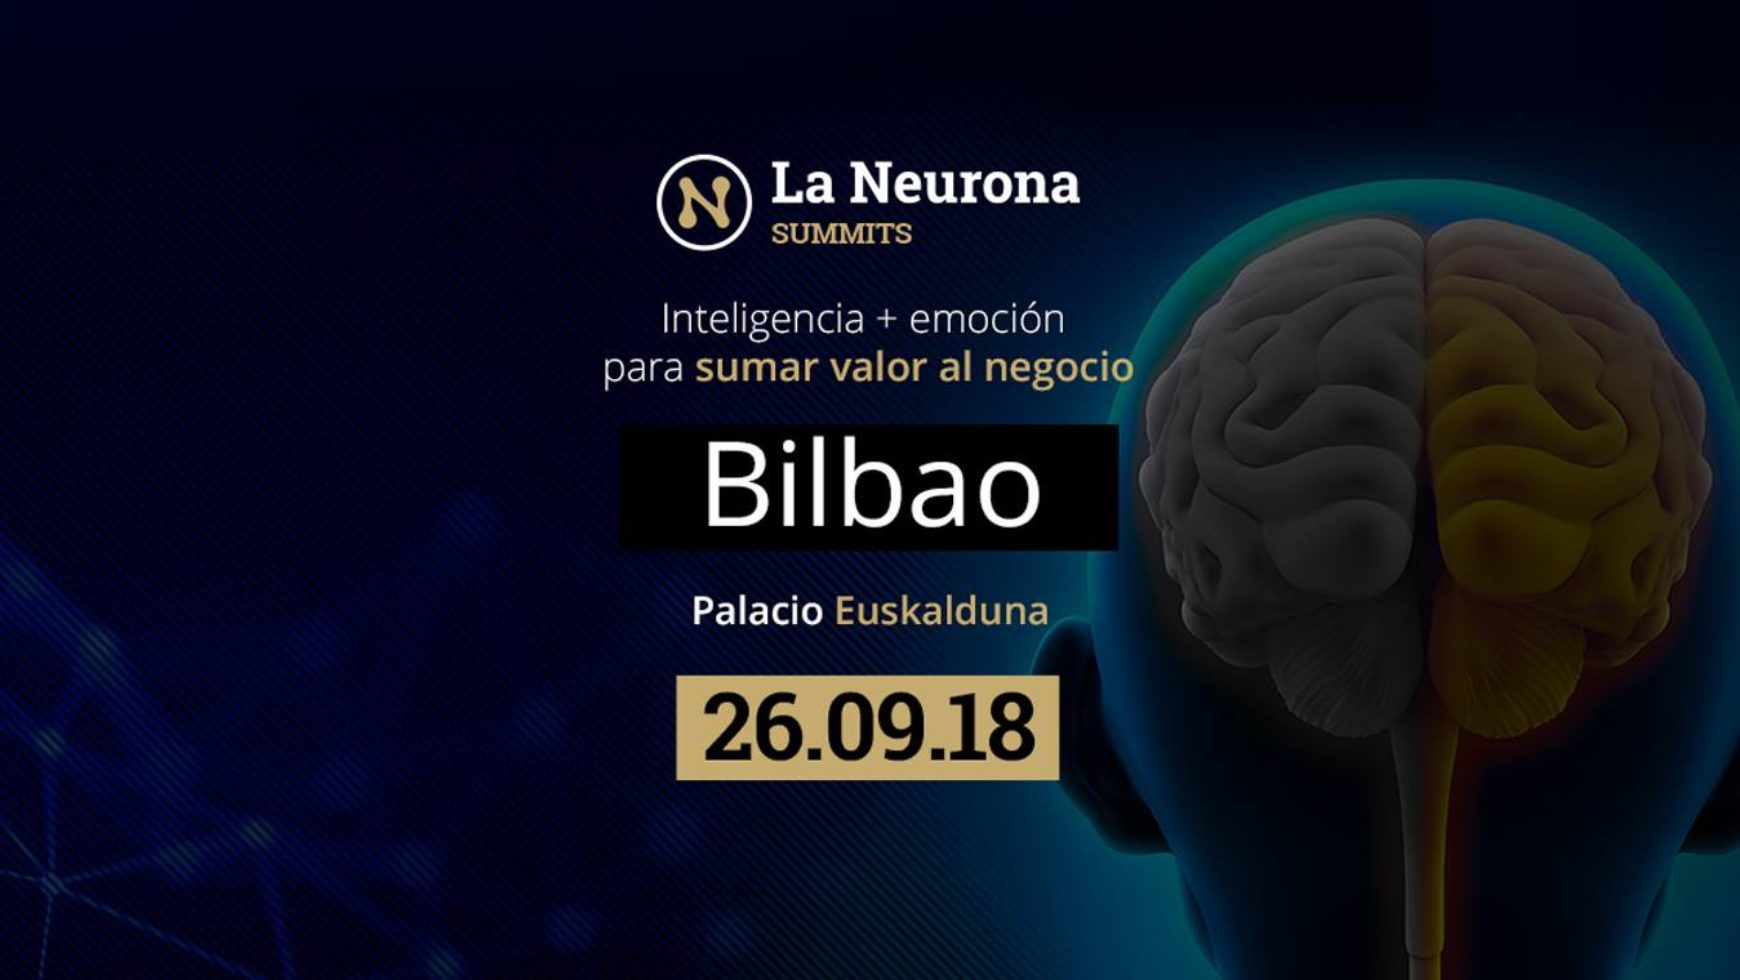 Jornada Summit de La Neurona